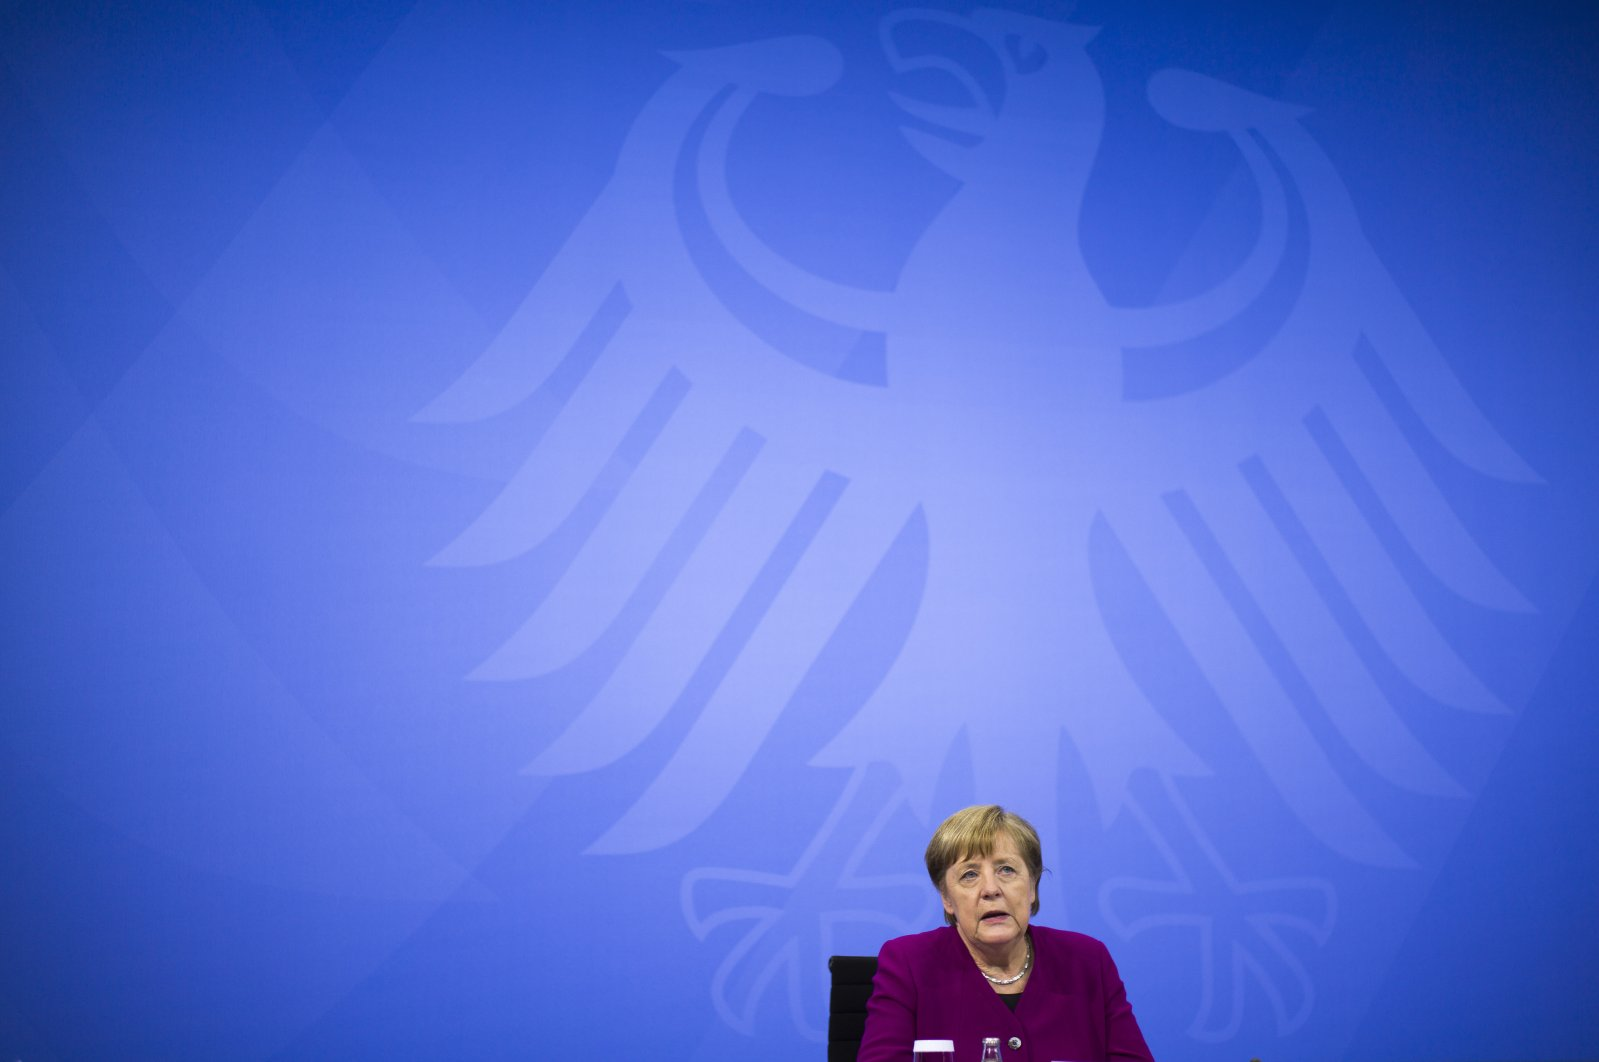 German Chancellor Angela Merkel attends a news conference with Bavarian state governor Markus Soder and the Mayor of Berlin Michael Mueller after a meeting at the chancellery in Berlin, Germany, March 3, 2021. (AP Photo)